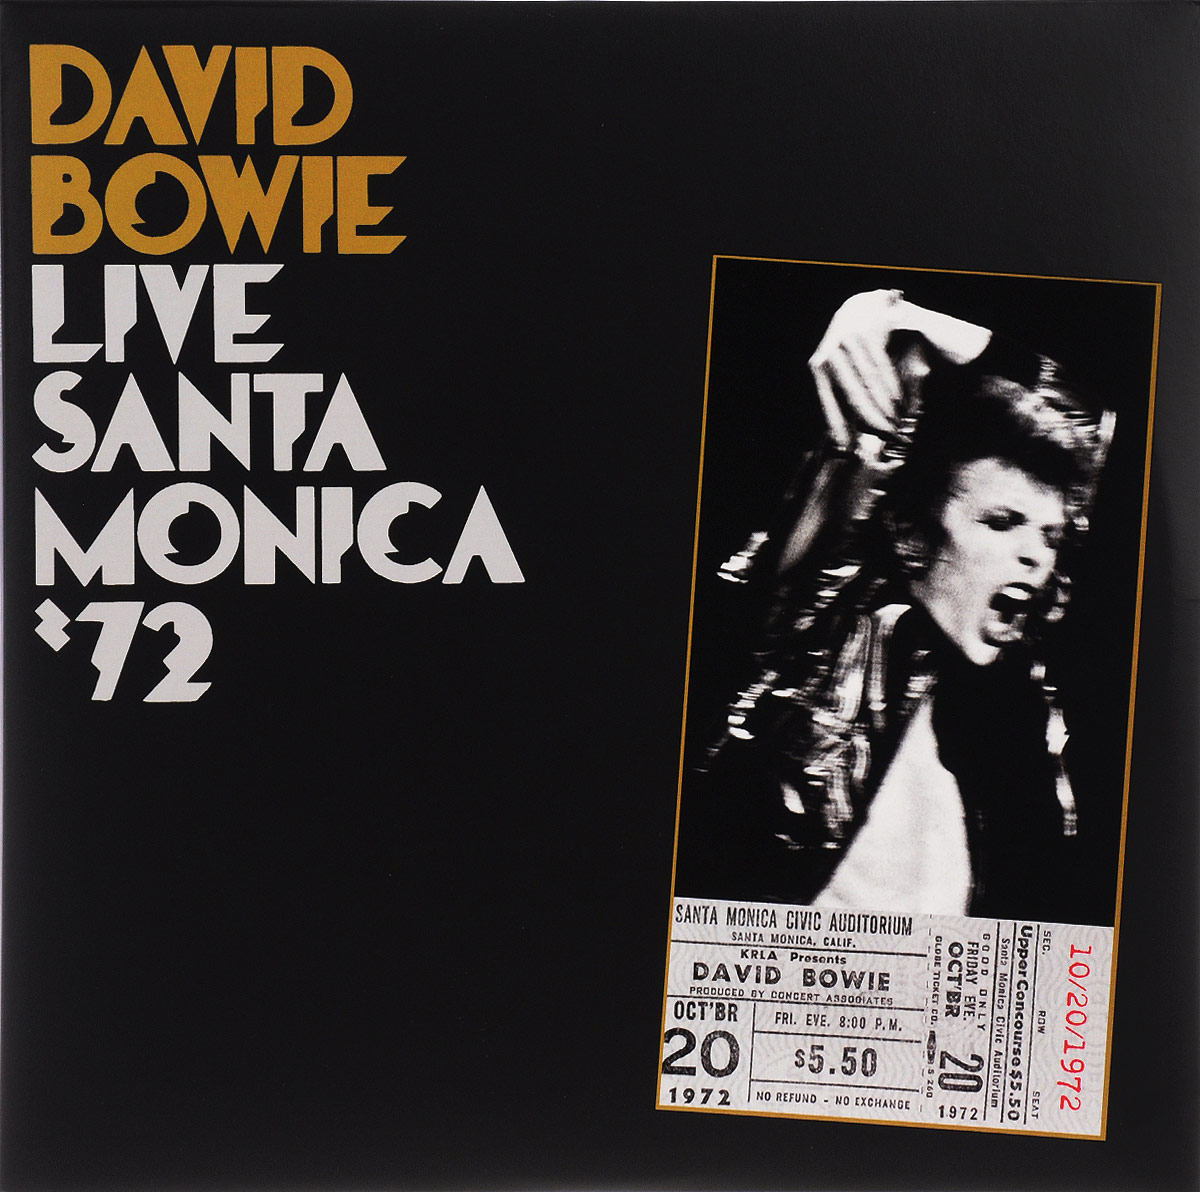 Дэвид Боуи David Bowie. Live Santa Monica '72 (2 LP) be live adults only marivent ex luabay marivent hotel santa ana 4 майорка